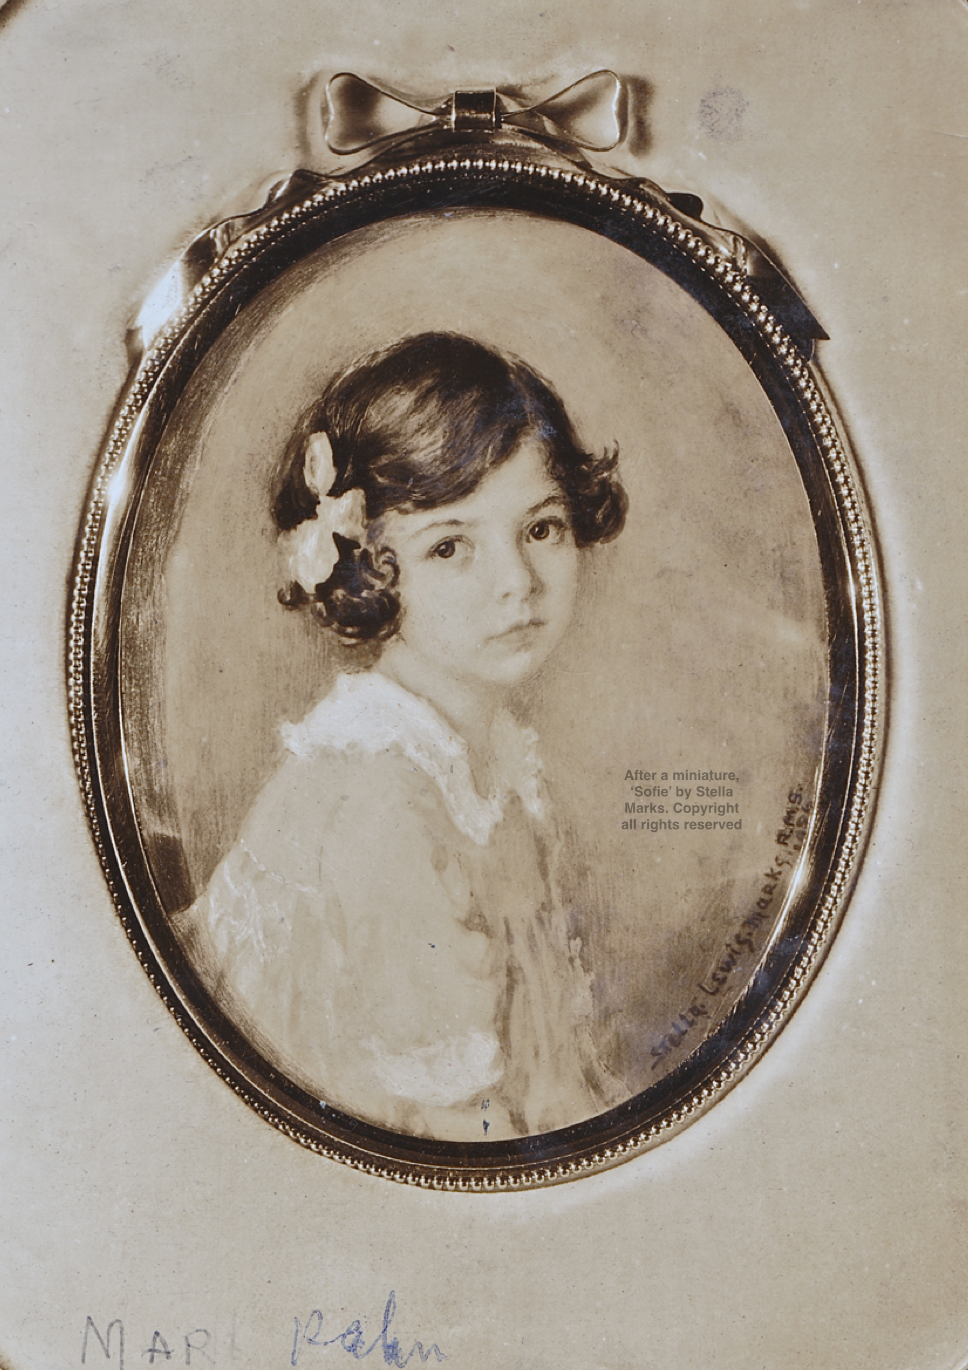 After a miniature, 'Sofie'/ Miss Martlyn Kaura or Marilyn Kawn, by Stella Marks, 1926. Copyright all rights reserved